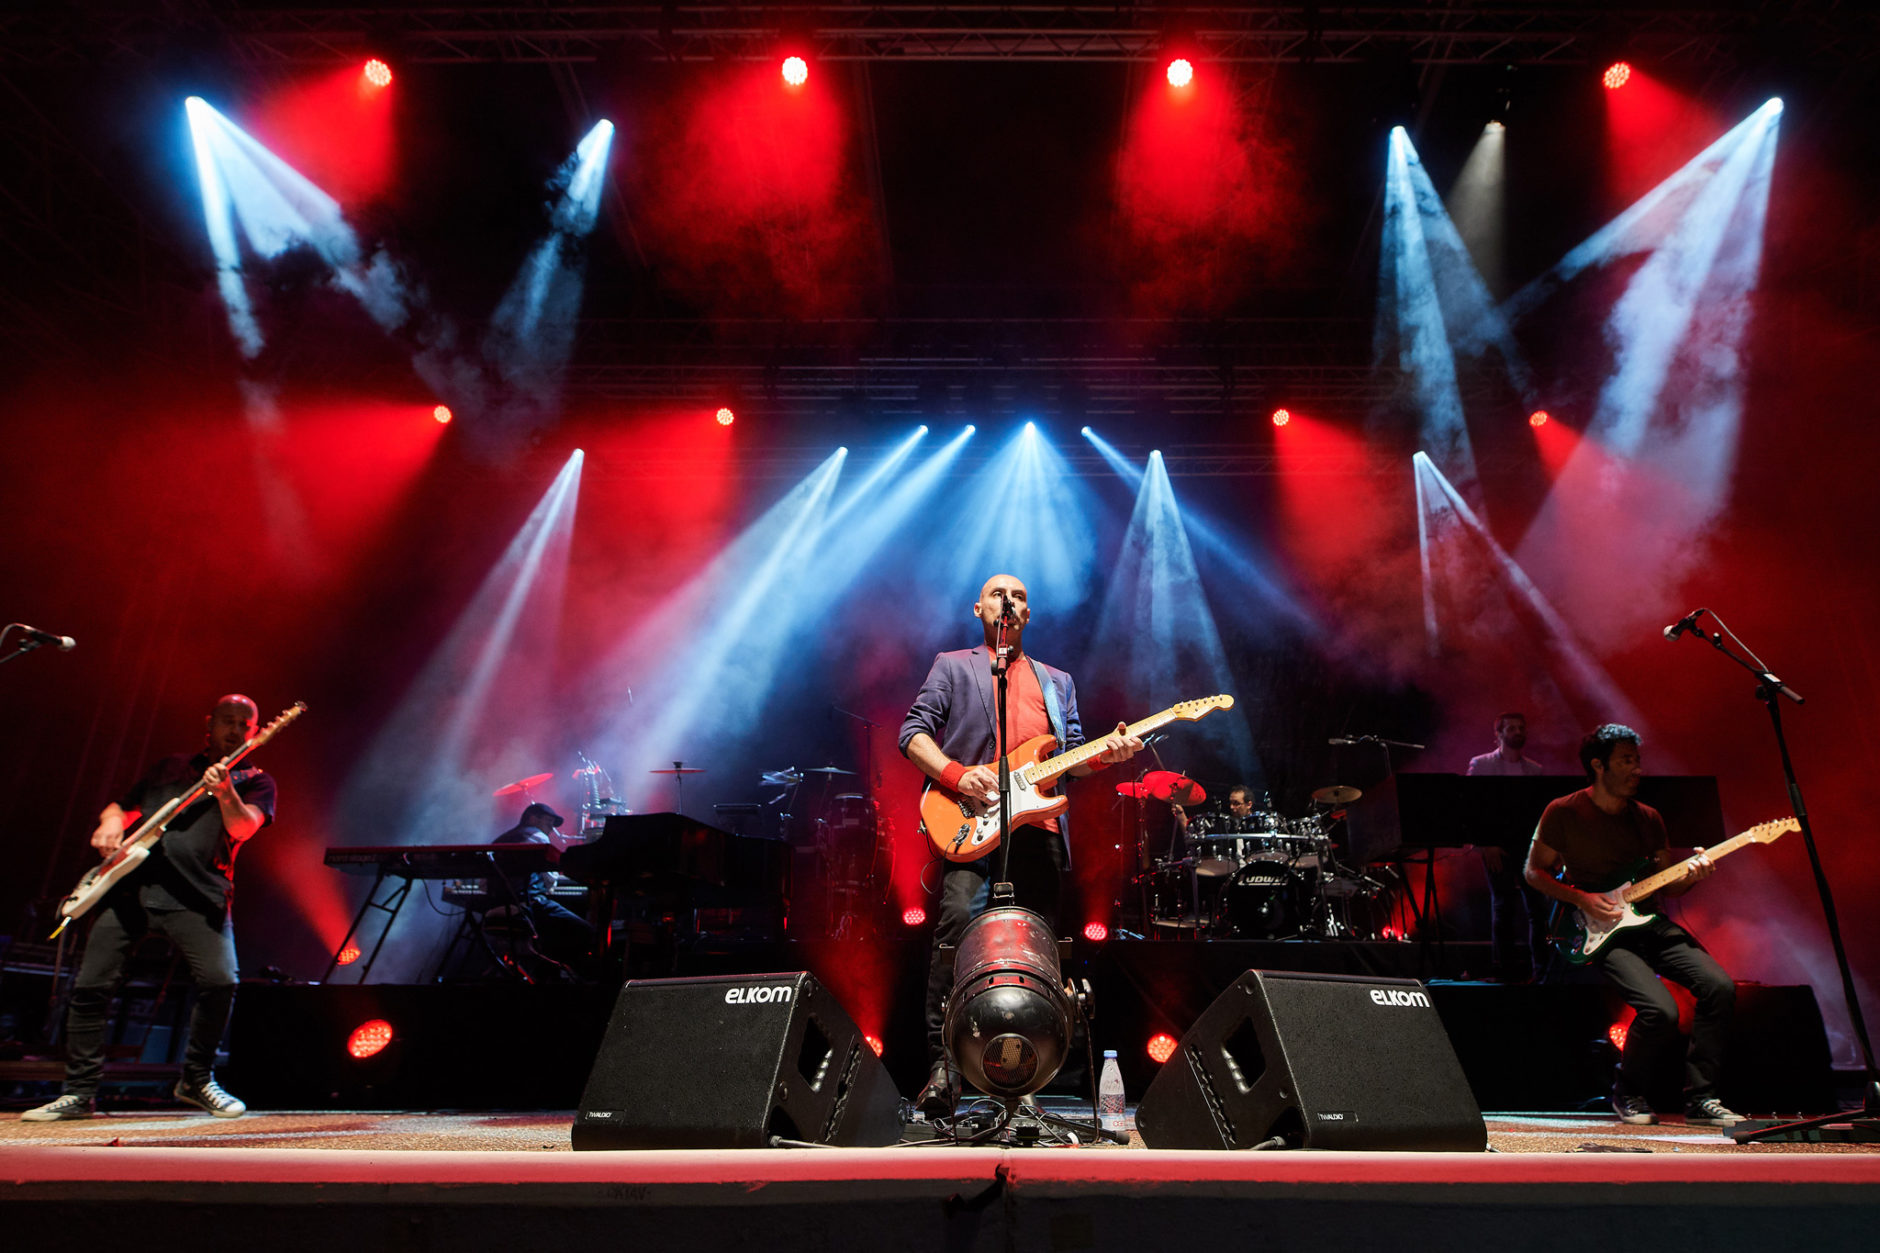 Tributo a dIRE sTRAITS – Brothers in Band 3